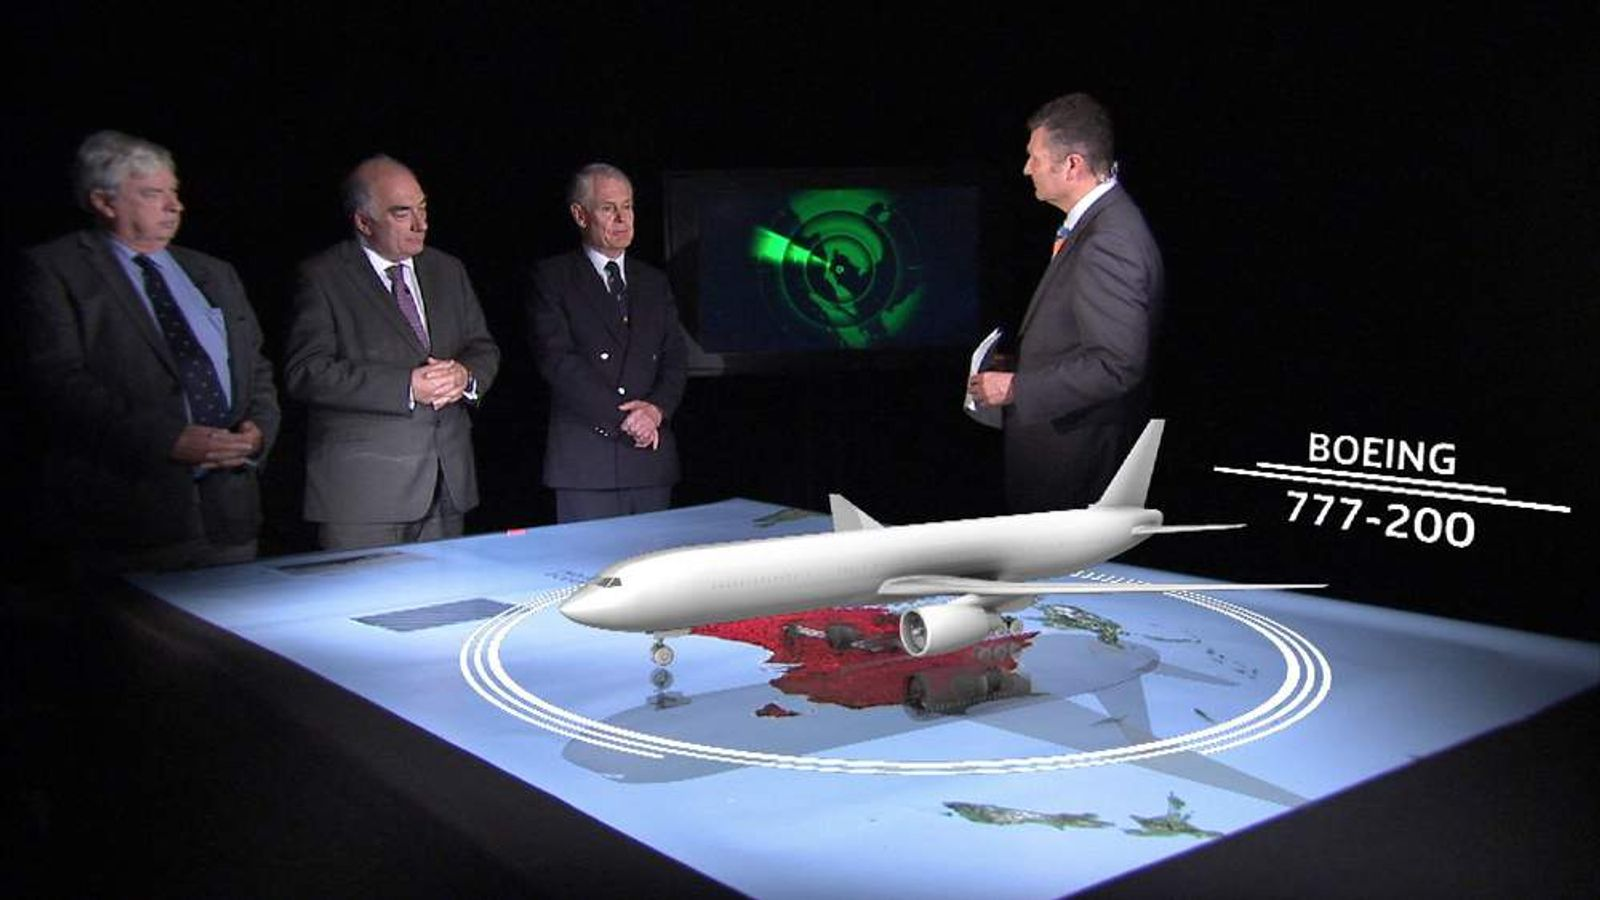 Sky's David Bowden analyses the latest information on Flight MH370